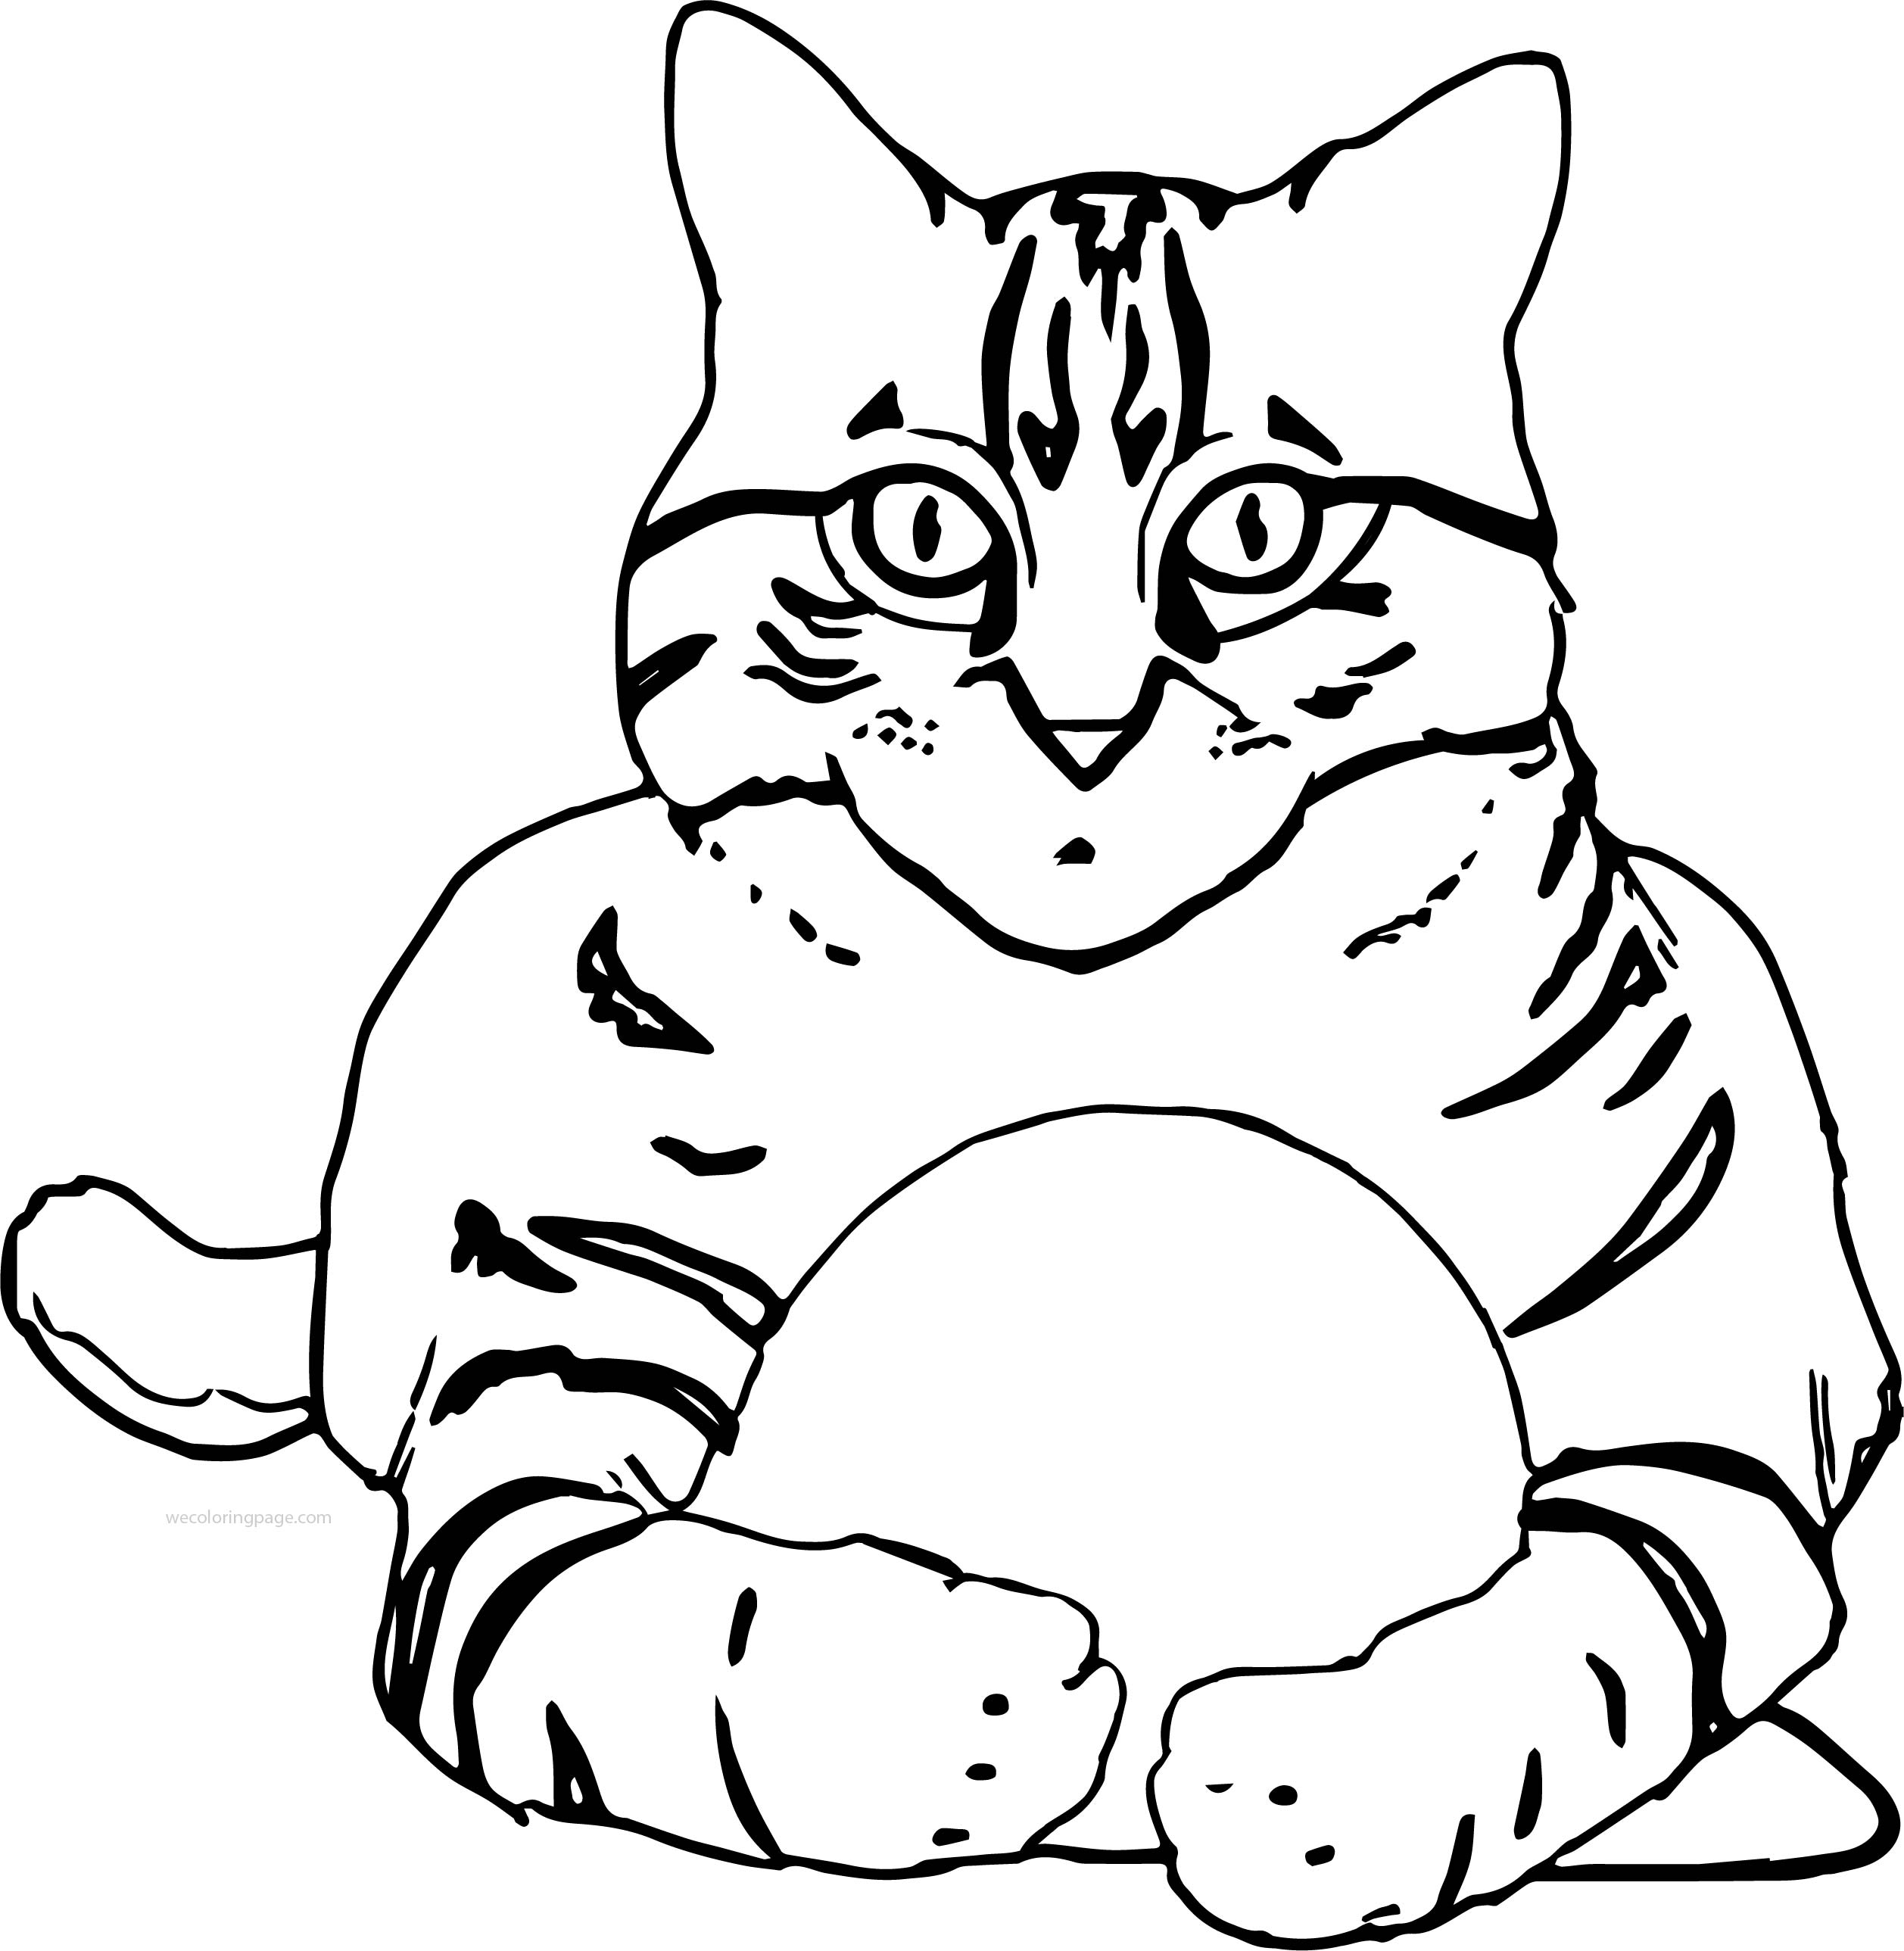 Cat Front View Coloring Page